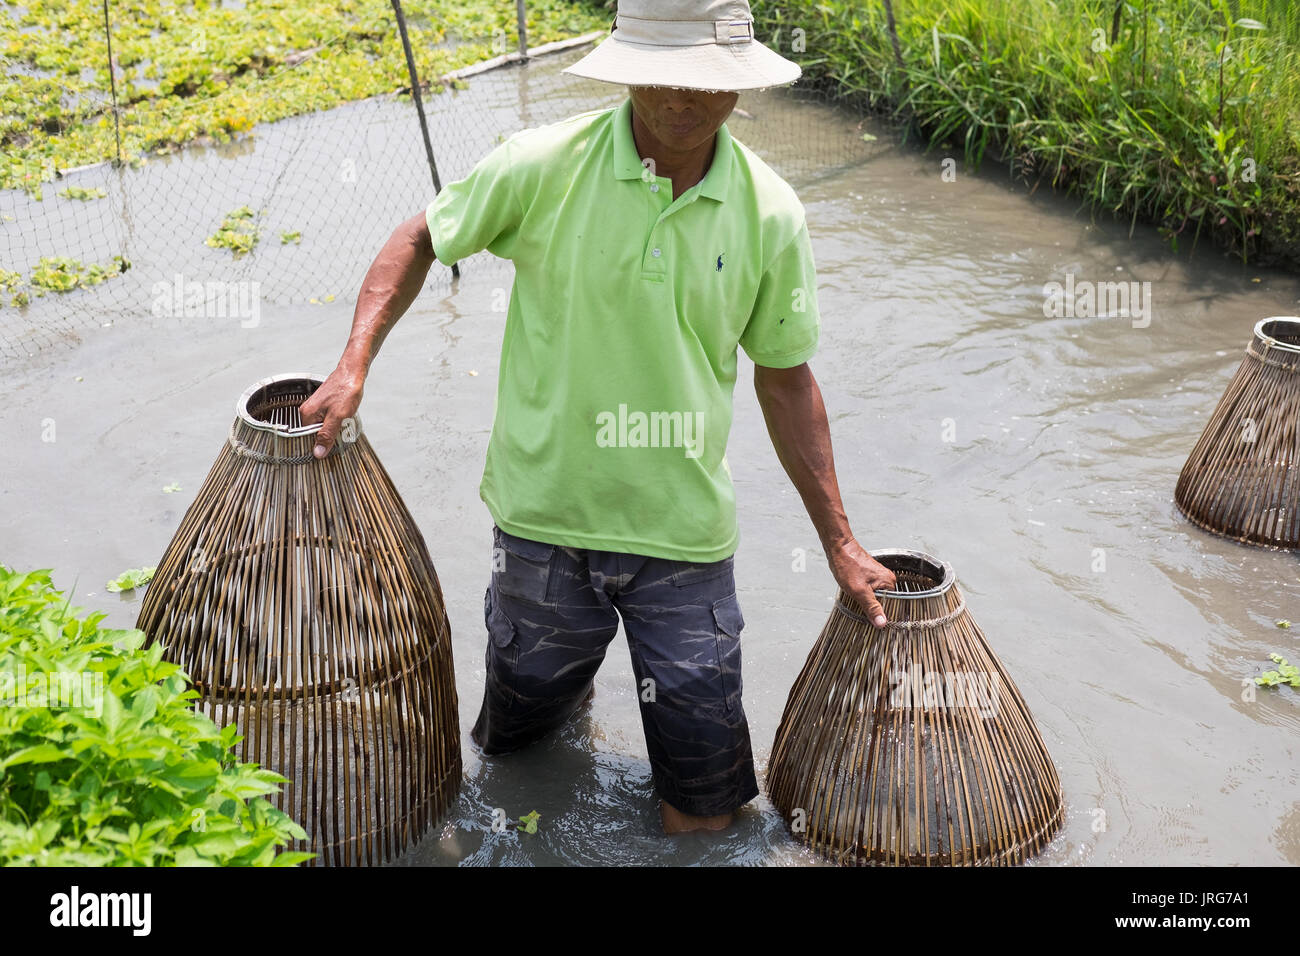 A Vietnamese man retrieves fishing baskets from a fish pond in Hoi An. - Stock Image